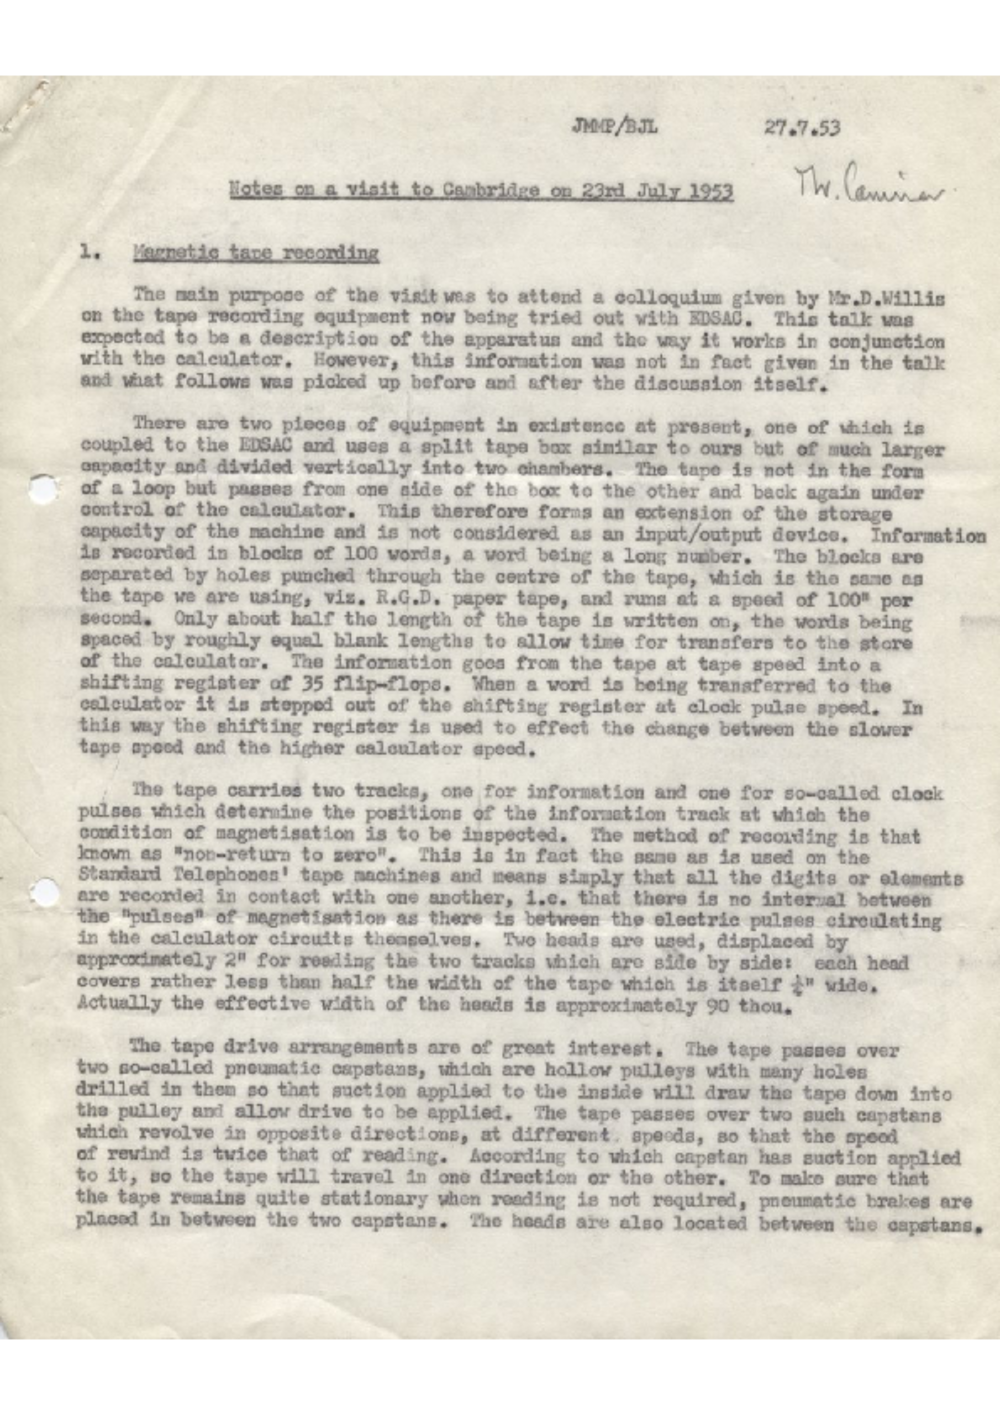 Article: 54872 Notes on a Visit to Cambridge, Jul 1953